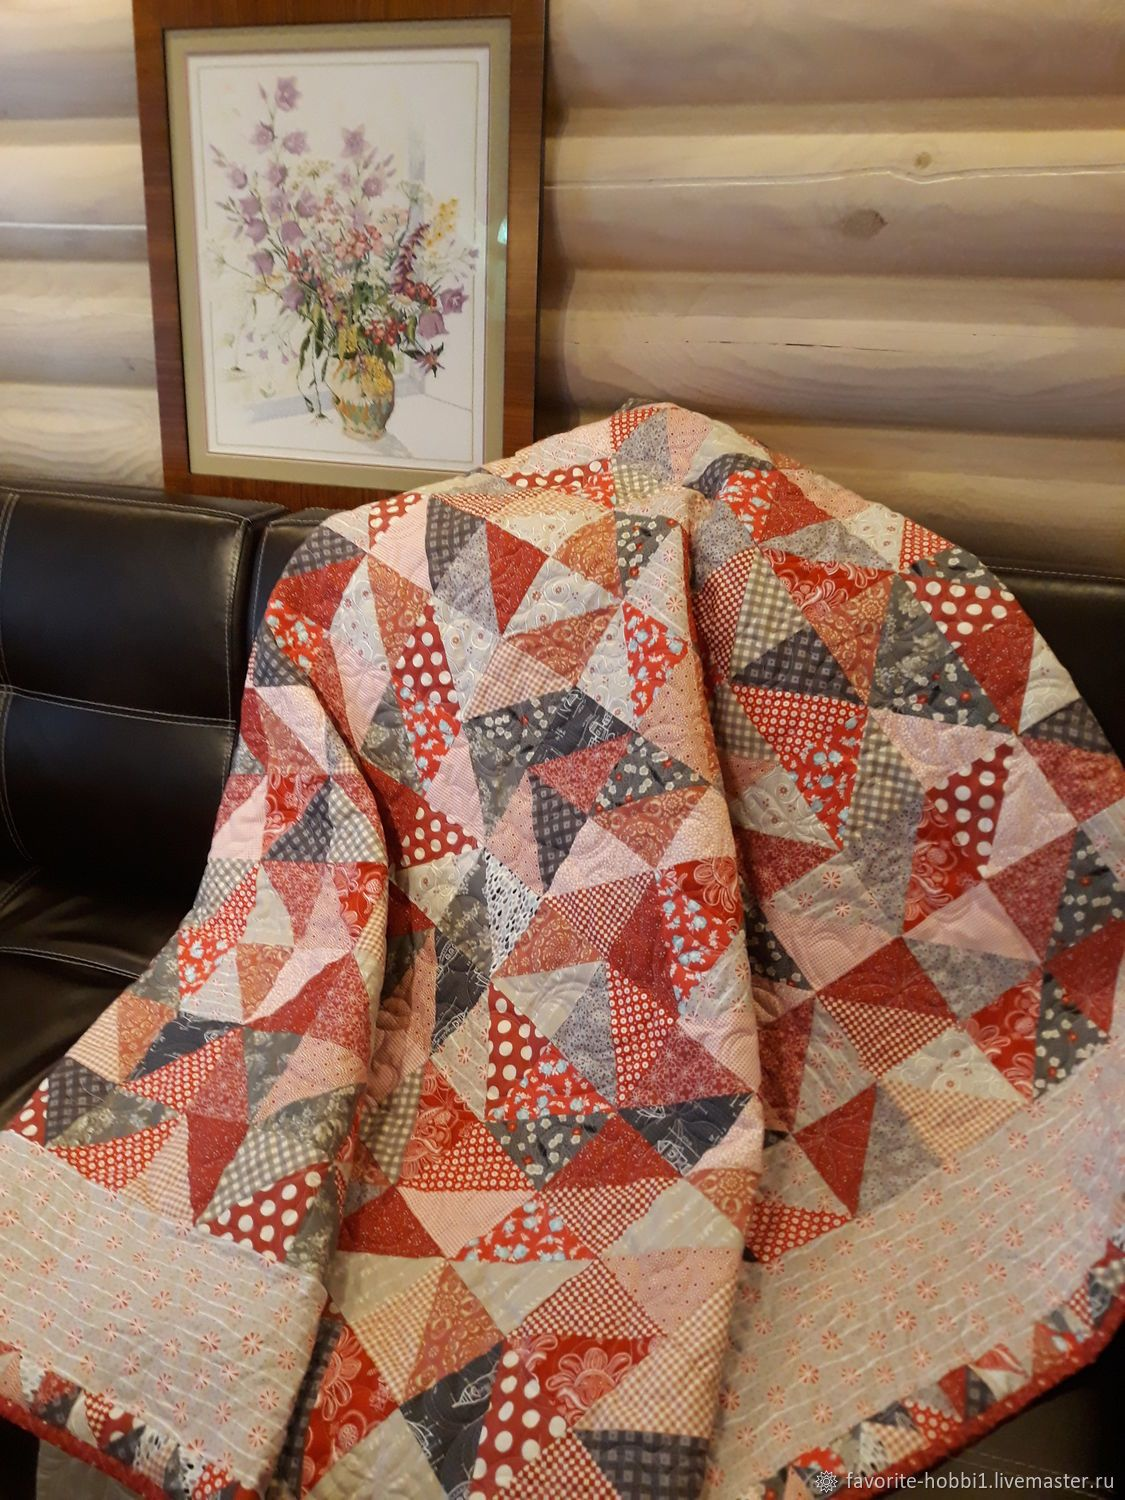 Best Patchwork Blanket 50 Shades Of Gray And Red パッチワークキルト 400 x 300